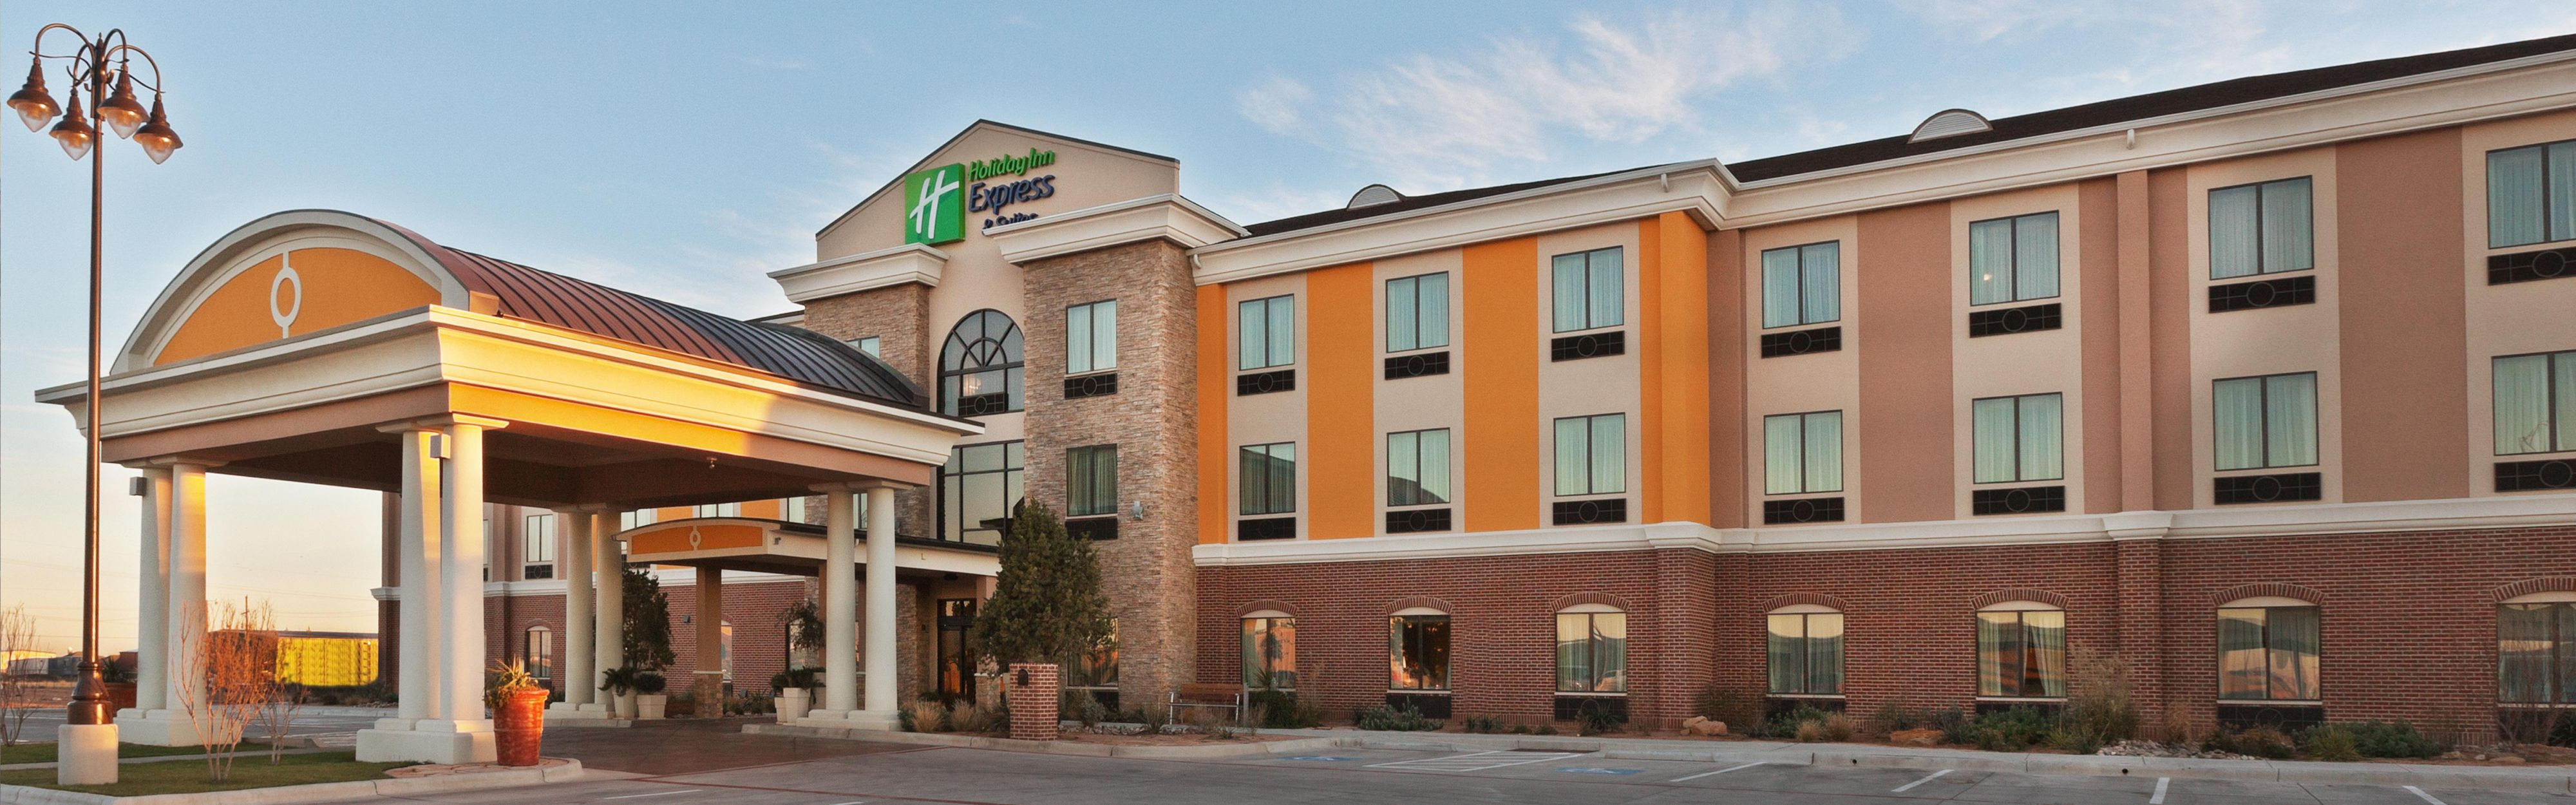 Holiday Inn Express & Suites Lubbock Southwest - Wolfforth image 0